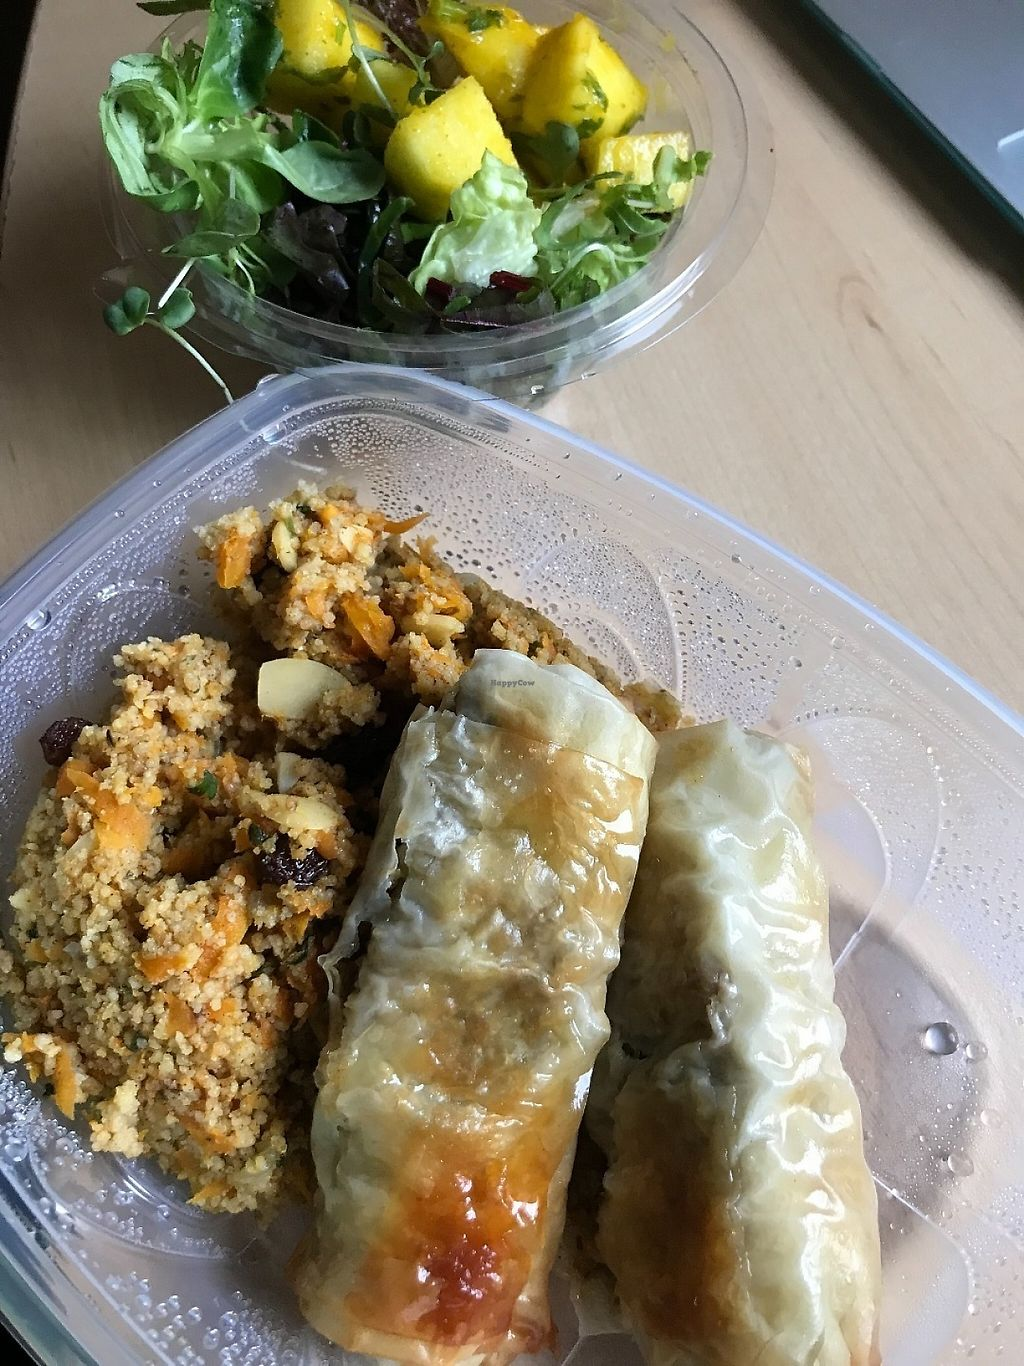 """Photo of Miss Saigon  by <a href=""""/members/profile/zubora"""">zubora</a> <br/>My takeaway dinner - complete meal with salad. Very tasty! <br/> June 4, 2017  - <a href='/contact/abuse/image/17785/265730'>Report</a>"""